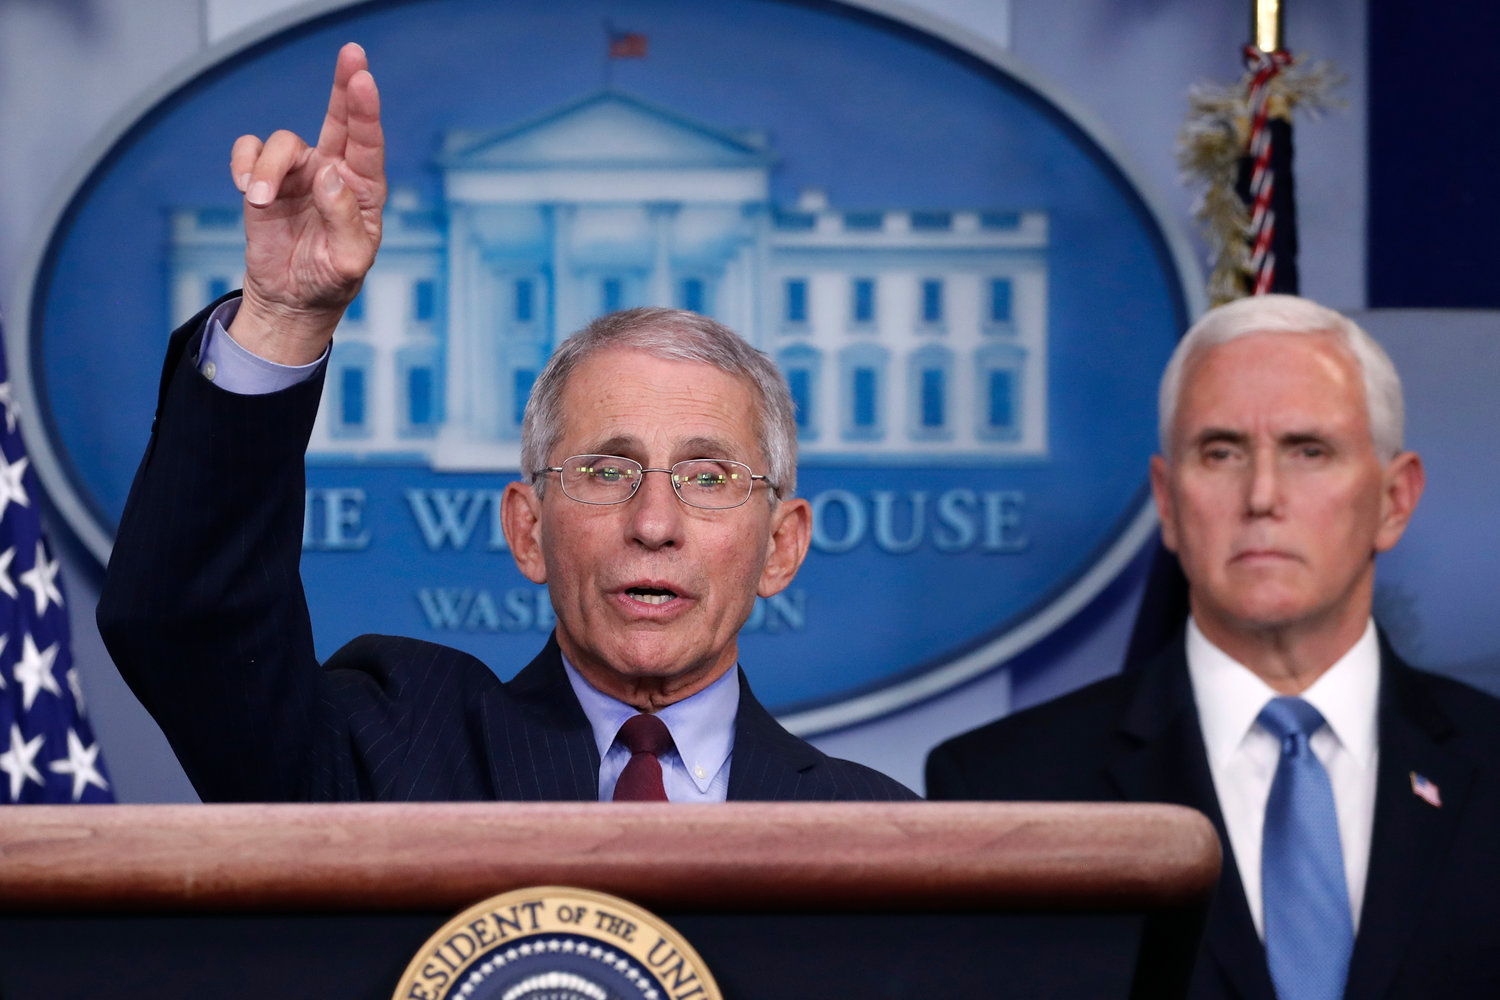 Dr. Anthony Fauci, director of the National Institute of Allergy and Infectious Diseases, speaks about the coronavirus in the James Brady Press Briefing Room of the White House, Tuesday, March 31, 2020, in Washington, as Vice President Mike Pence listens. (AP Photo/Alex Brandon)